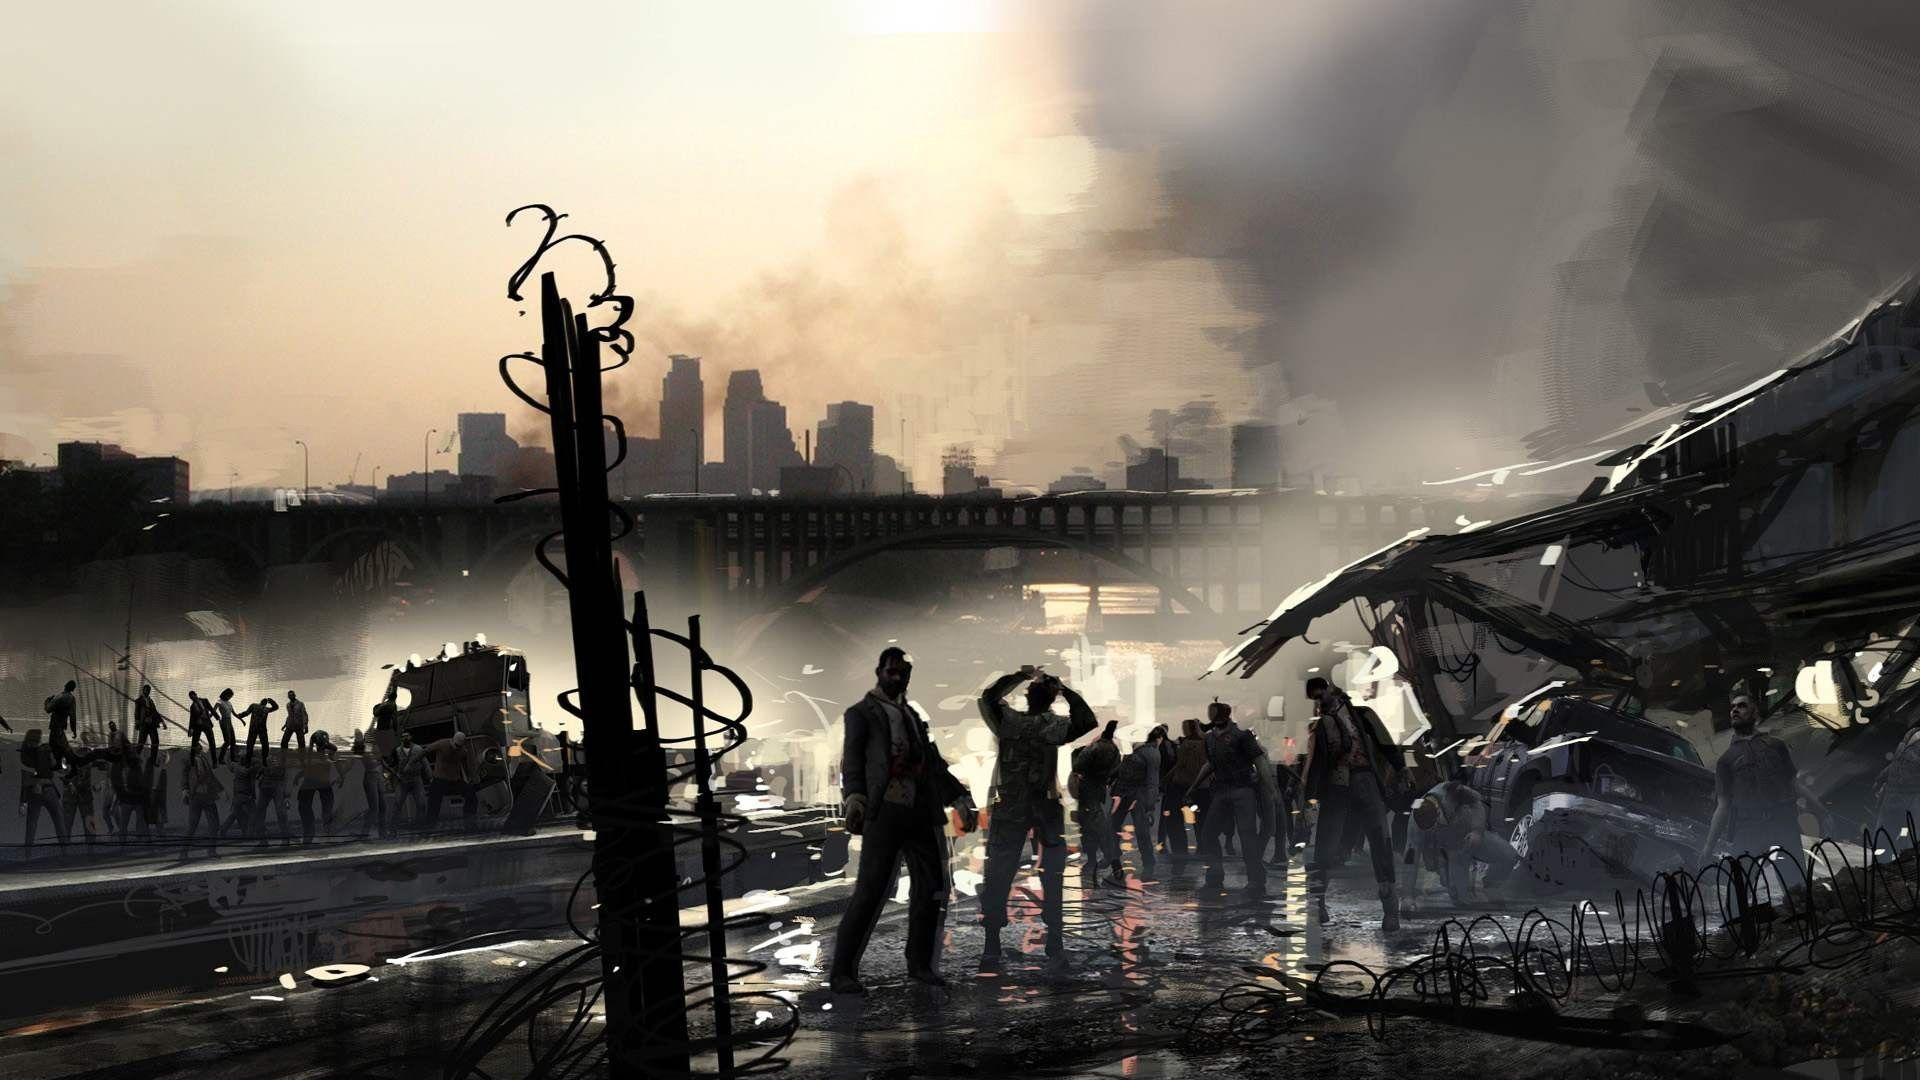 Res 1920x1080 Wallpaper 12 Wallpaper From Left 4 Dead 2 Zombie Wallpaper Zombie Background Pictures